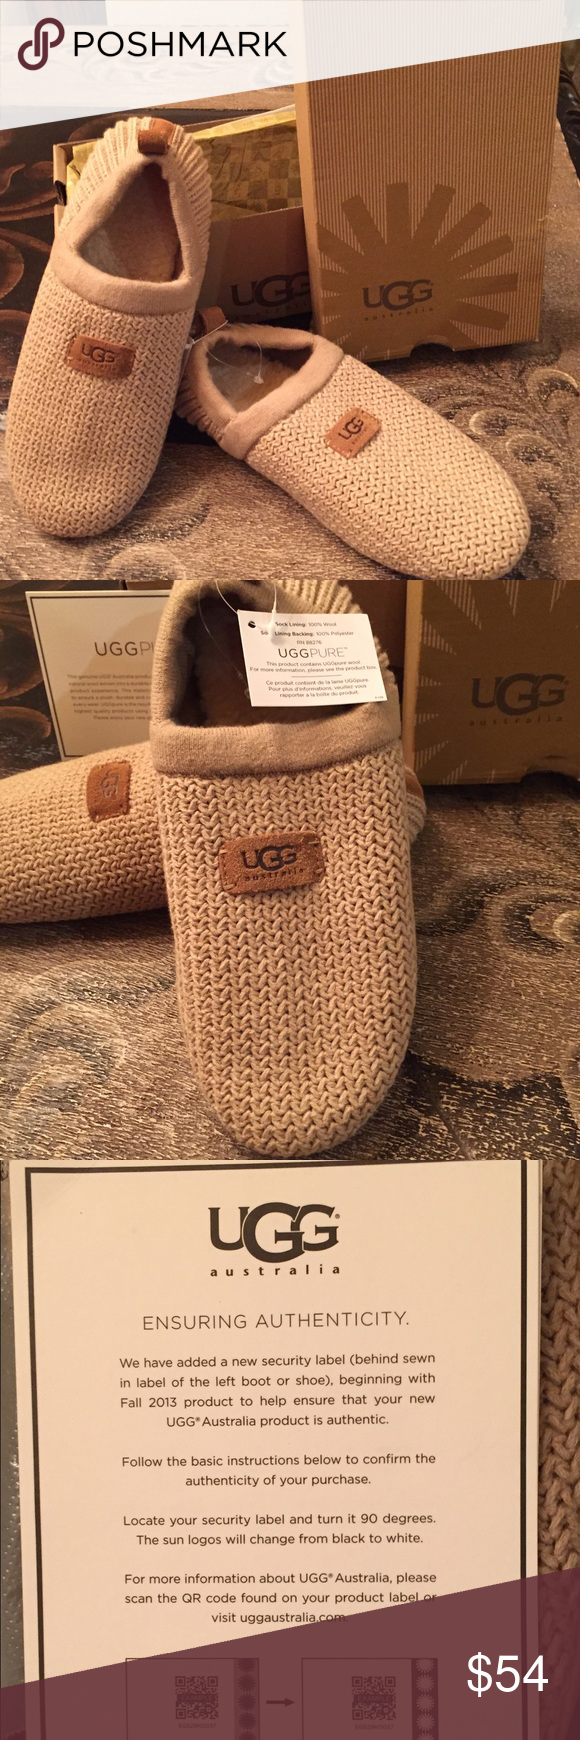 a83c6c3379 Ugg House shoes NEW IN Box 👣Ugg House shoes✨New in Box with tags